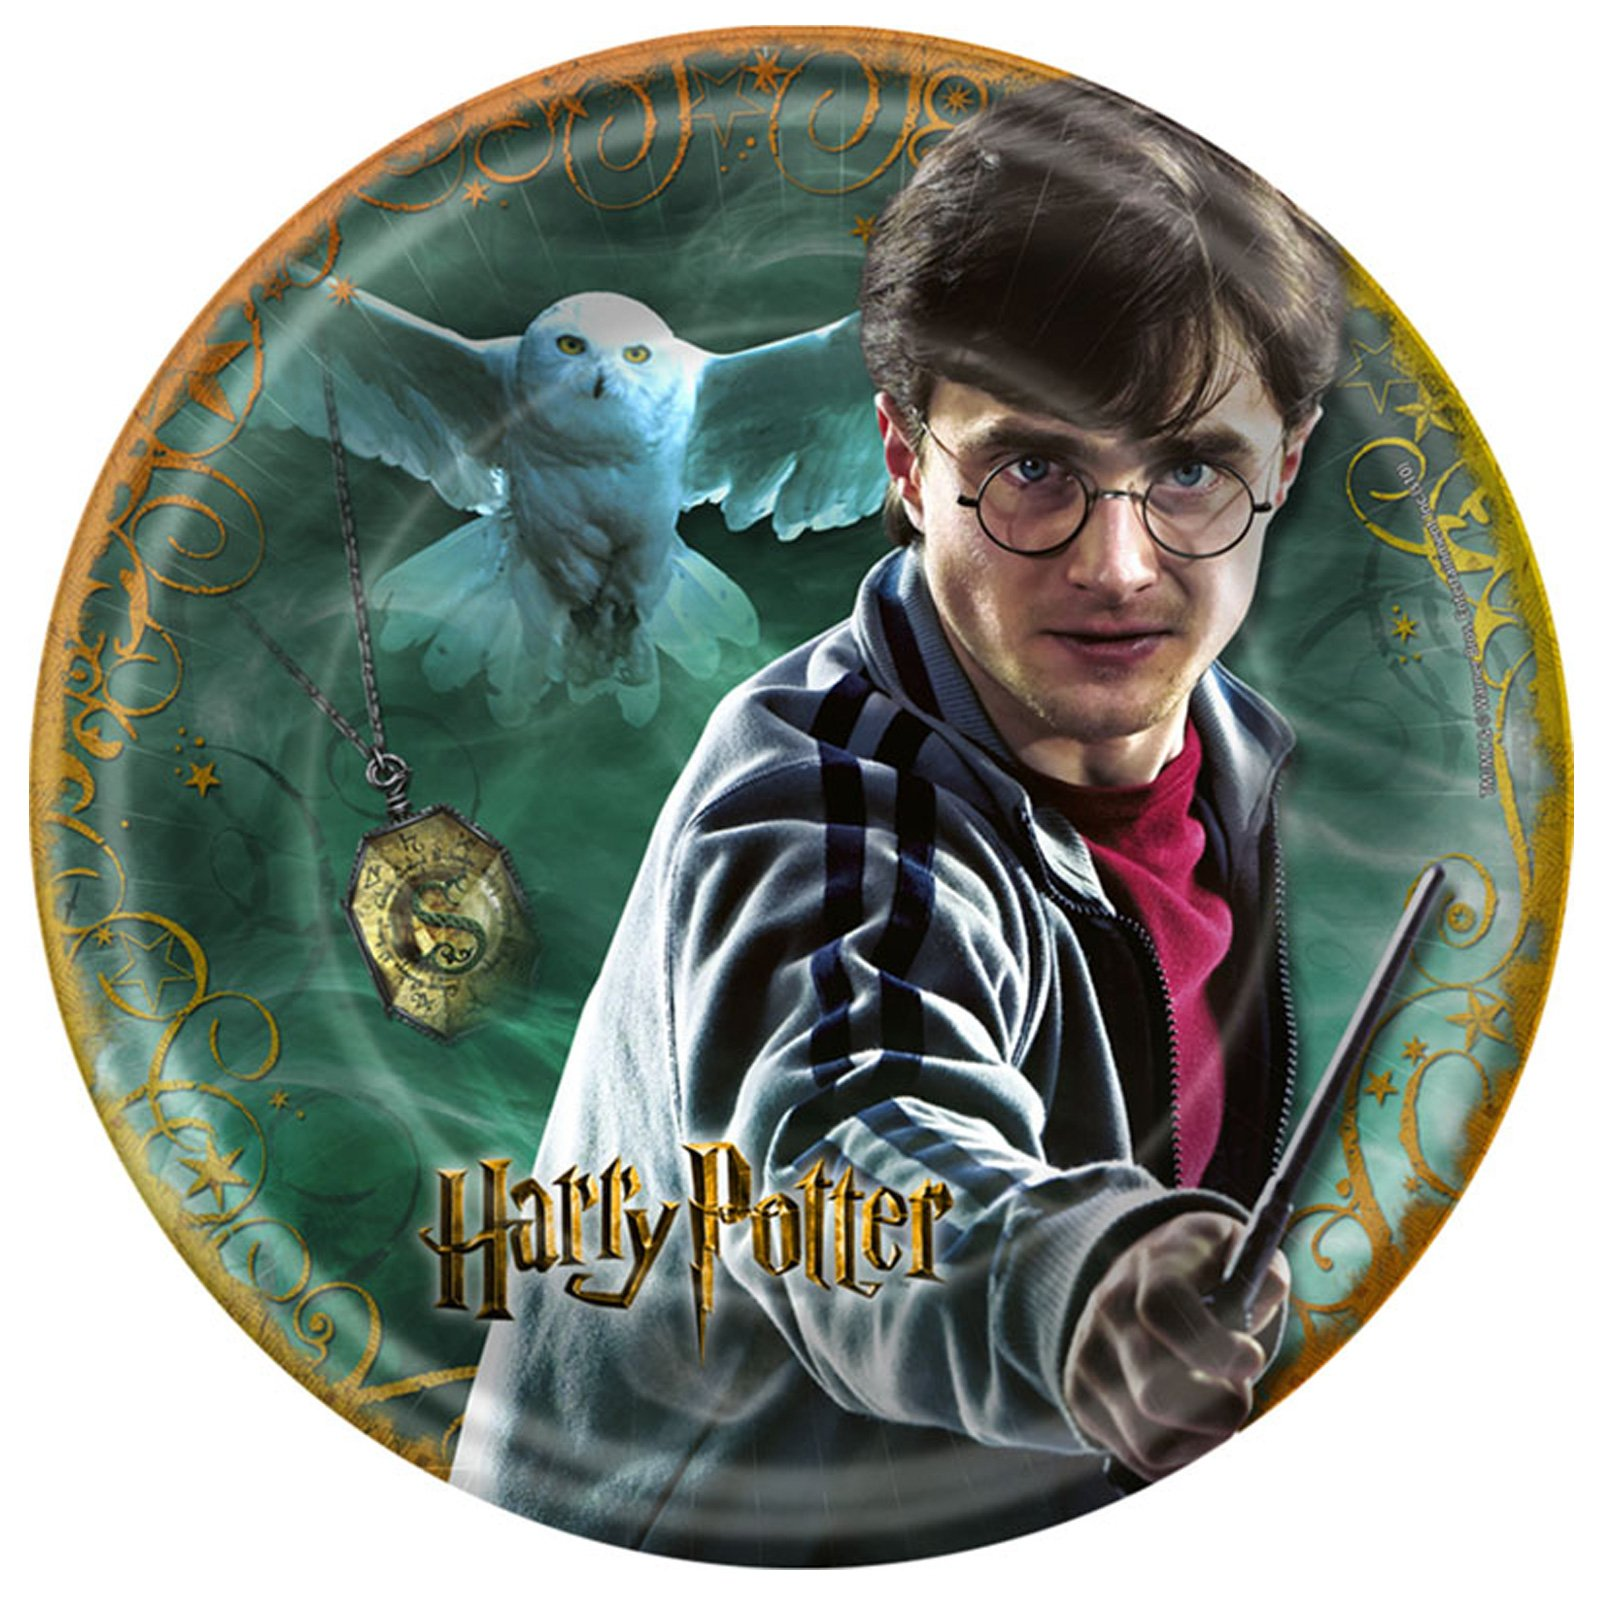 Harry Potter Deathly Hallows Dessert Plates (8 count)